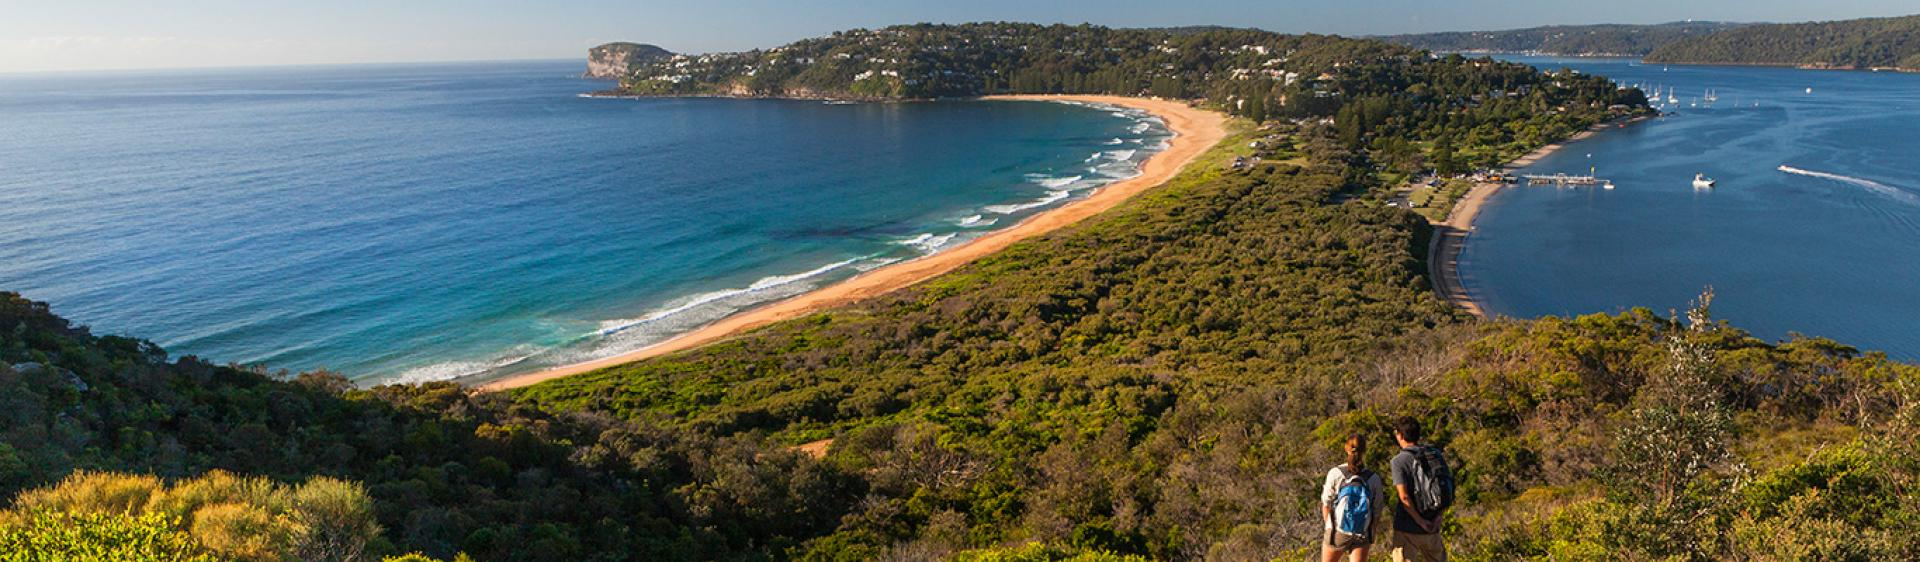 Barrenjoey Lighthouse Track, Palm Beach